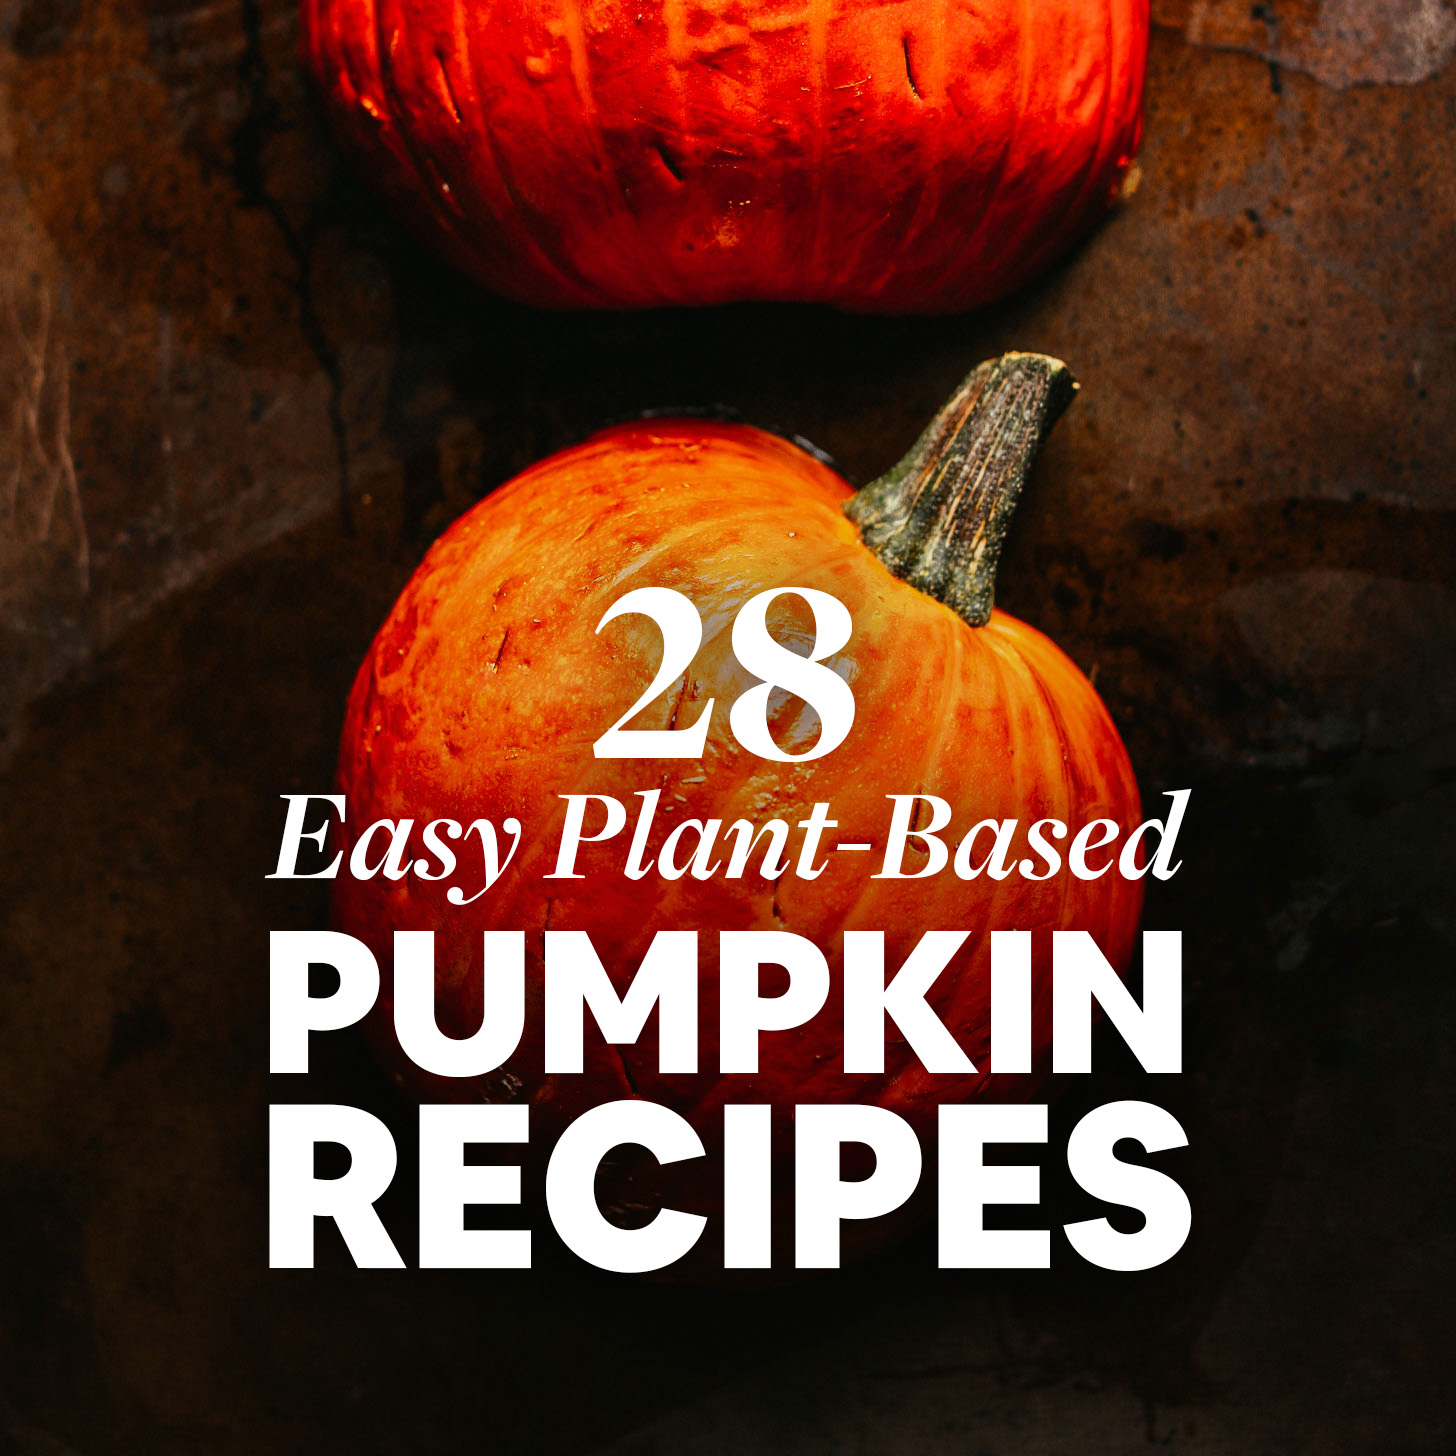 Pumpkins on a baking sheet for our post on easy plant-based pumpkin recipes